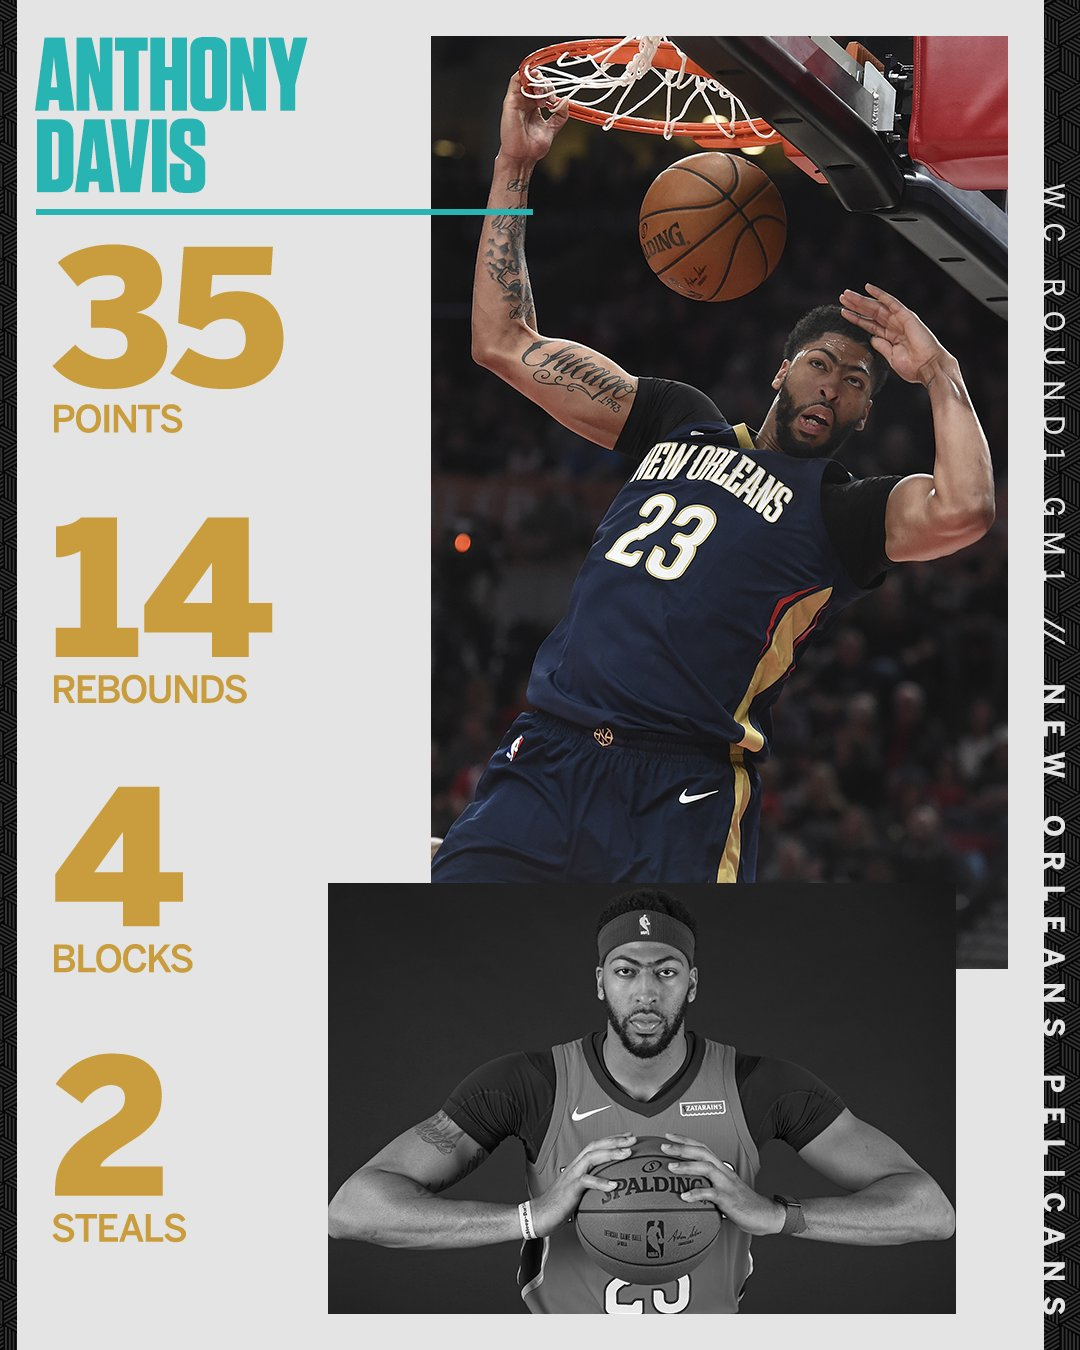 Anthony Davis REALLY wanted his first postseason win. https://t.co/voYJLu1nH1